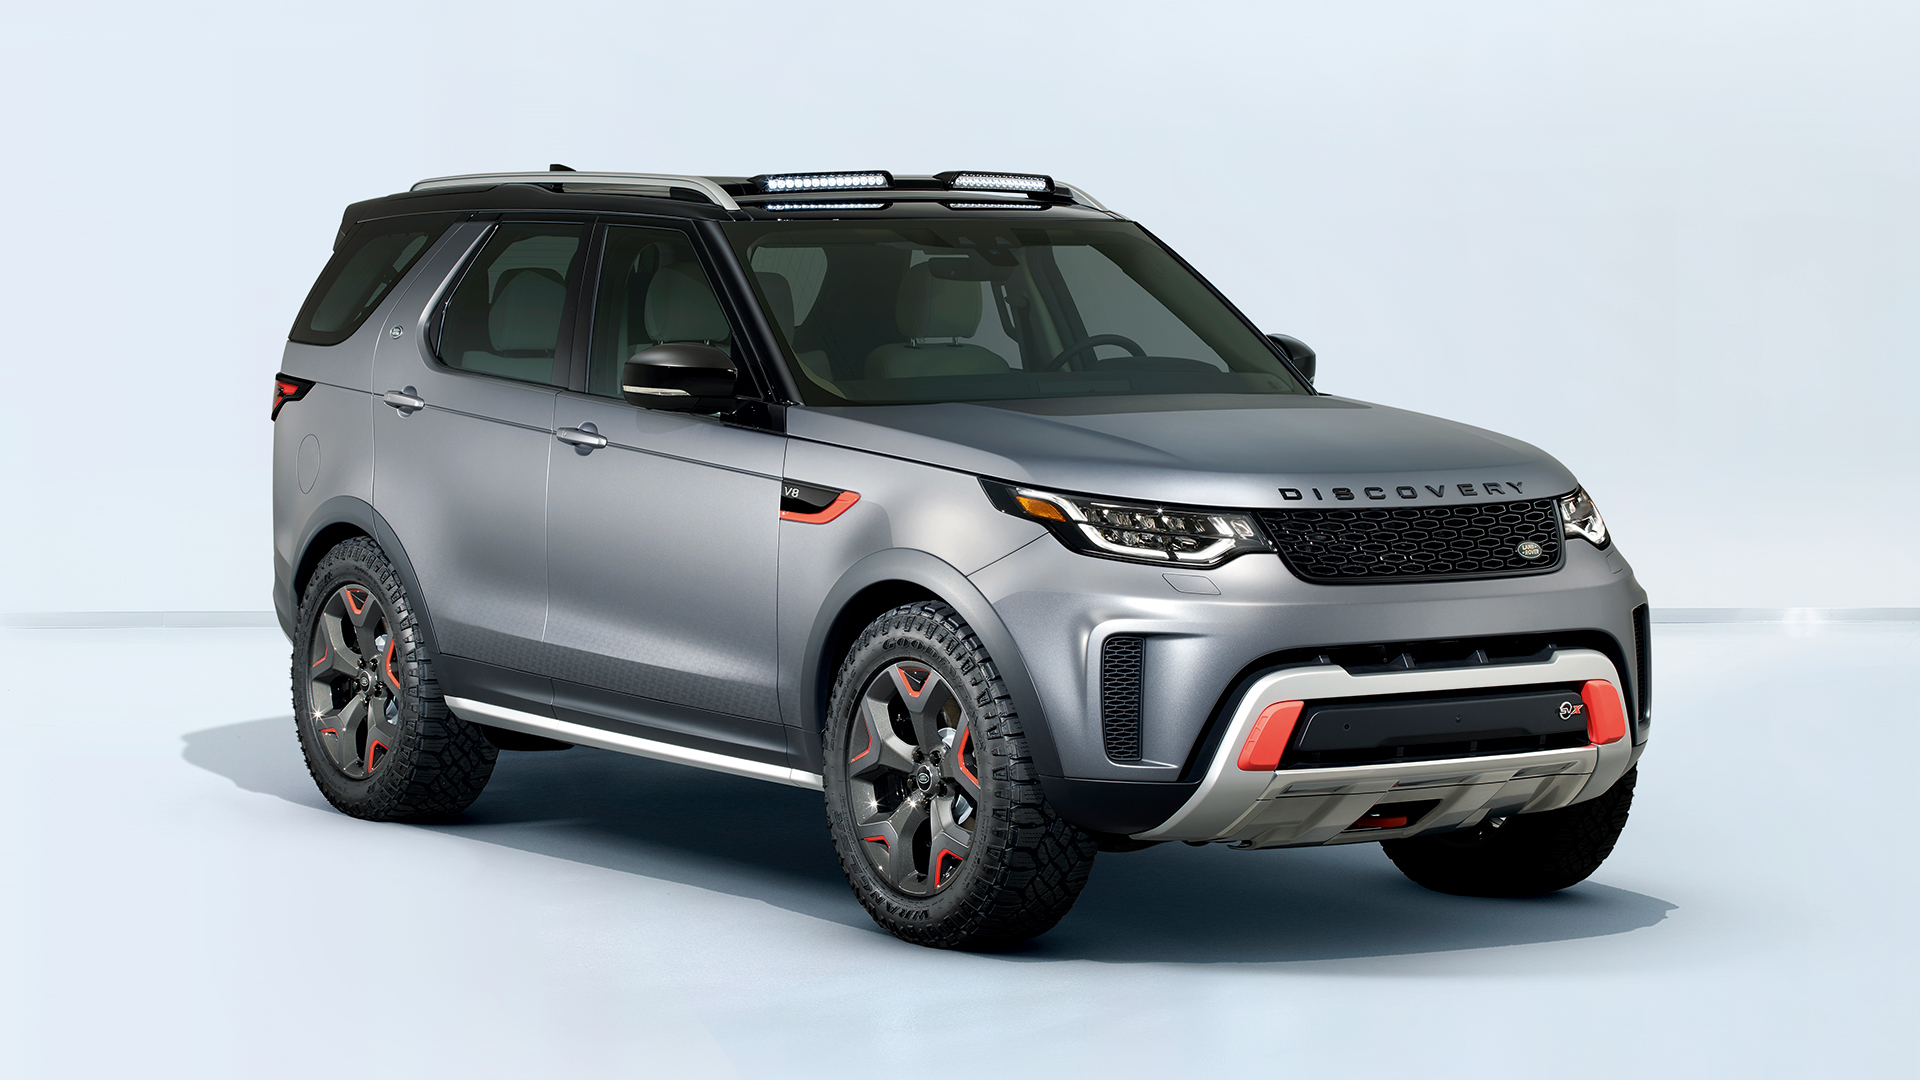 Frankfurt Motor Show 2017: High performance SVX version of Discovery unveiled